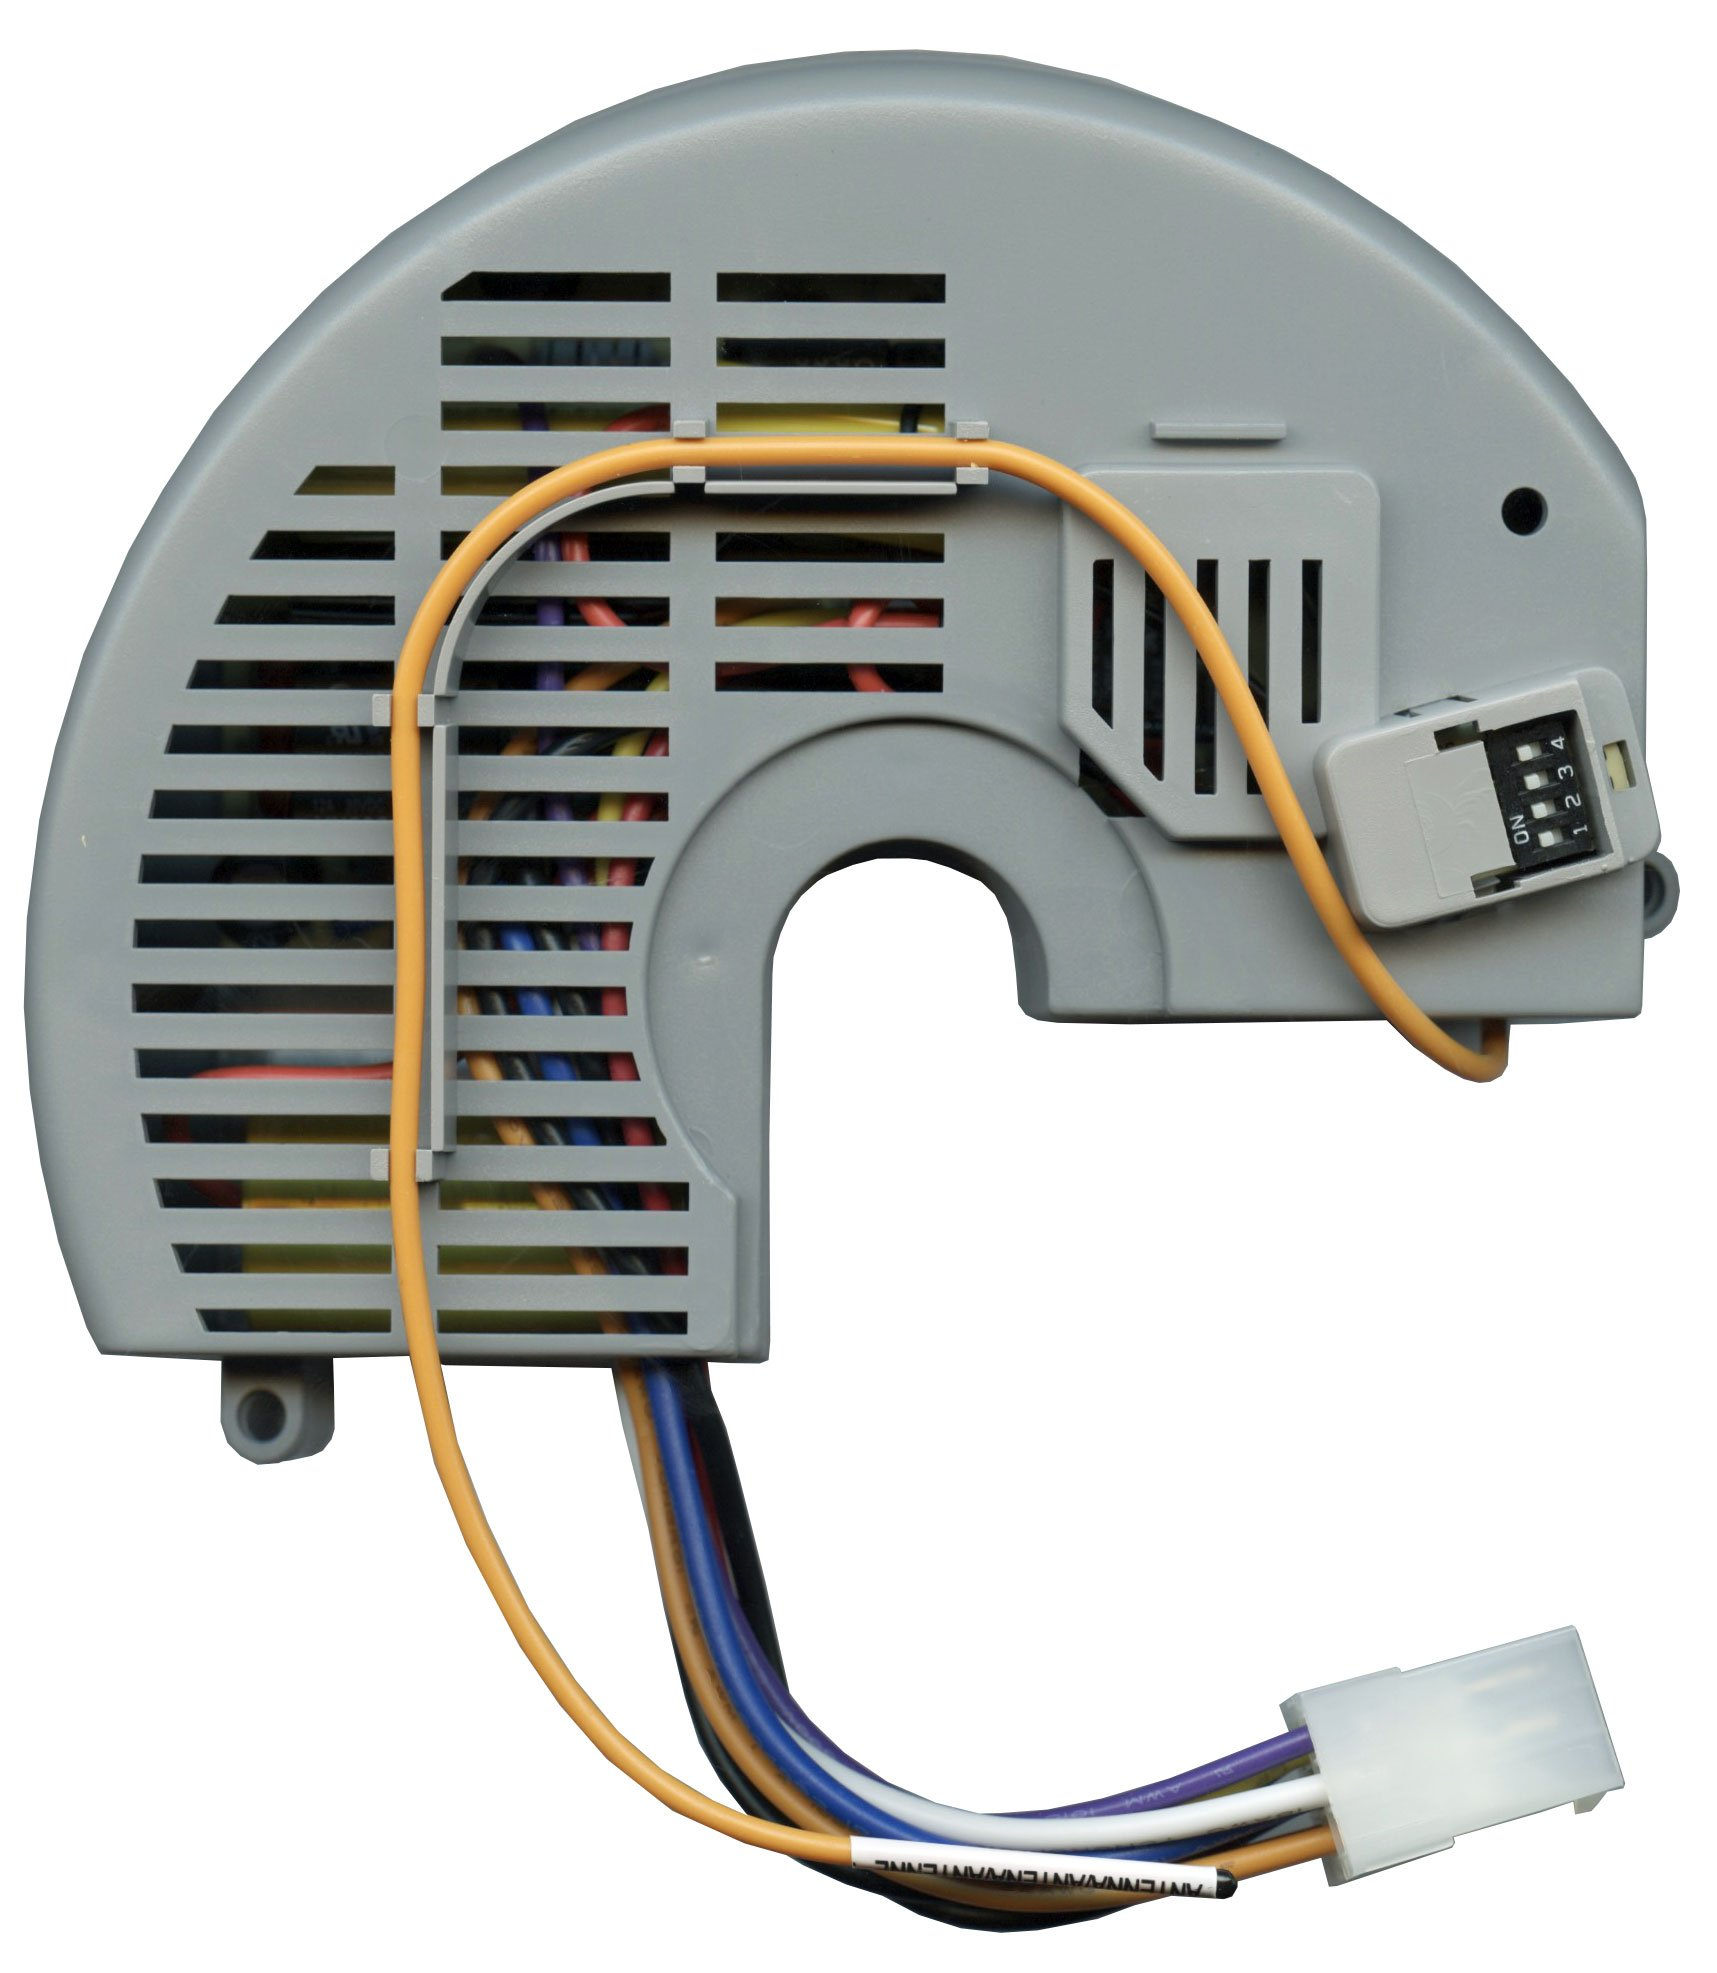 Anderic Replacement for Hampton Bay FAN10R Ceiling fan Receiver (FAN-10R, used with Hampton Bay FAN9T, FAN-9T Thermostatic Remote) - Controls Fan Reverse, High, Medium, Low, Off and Lights